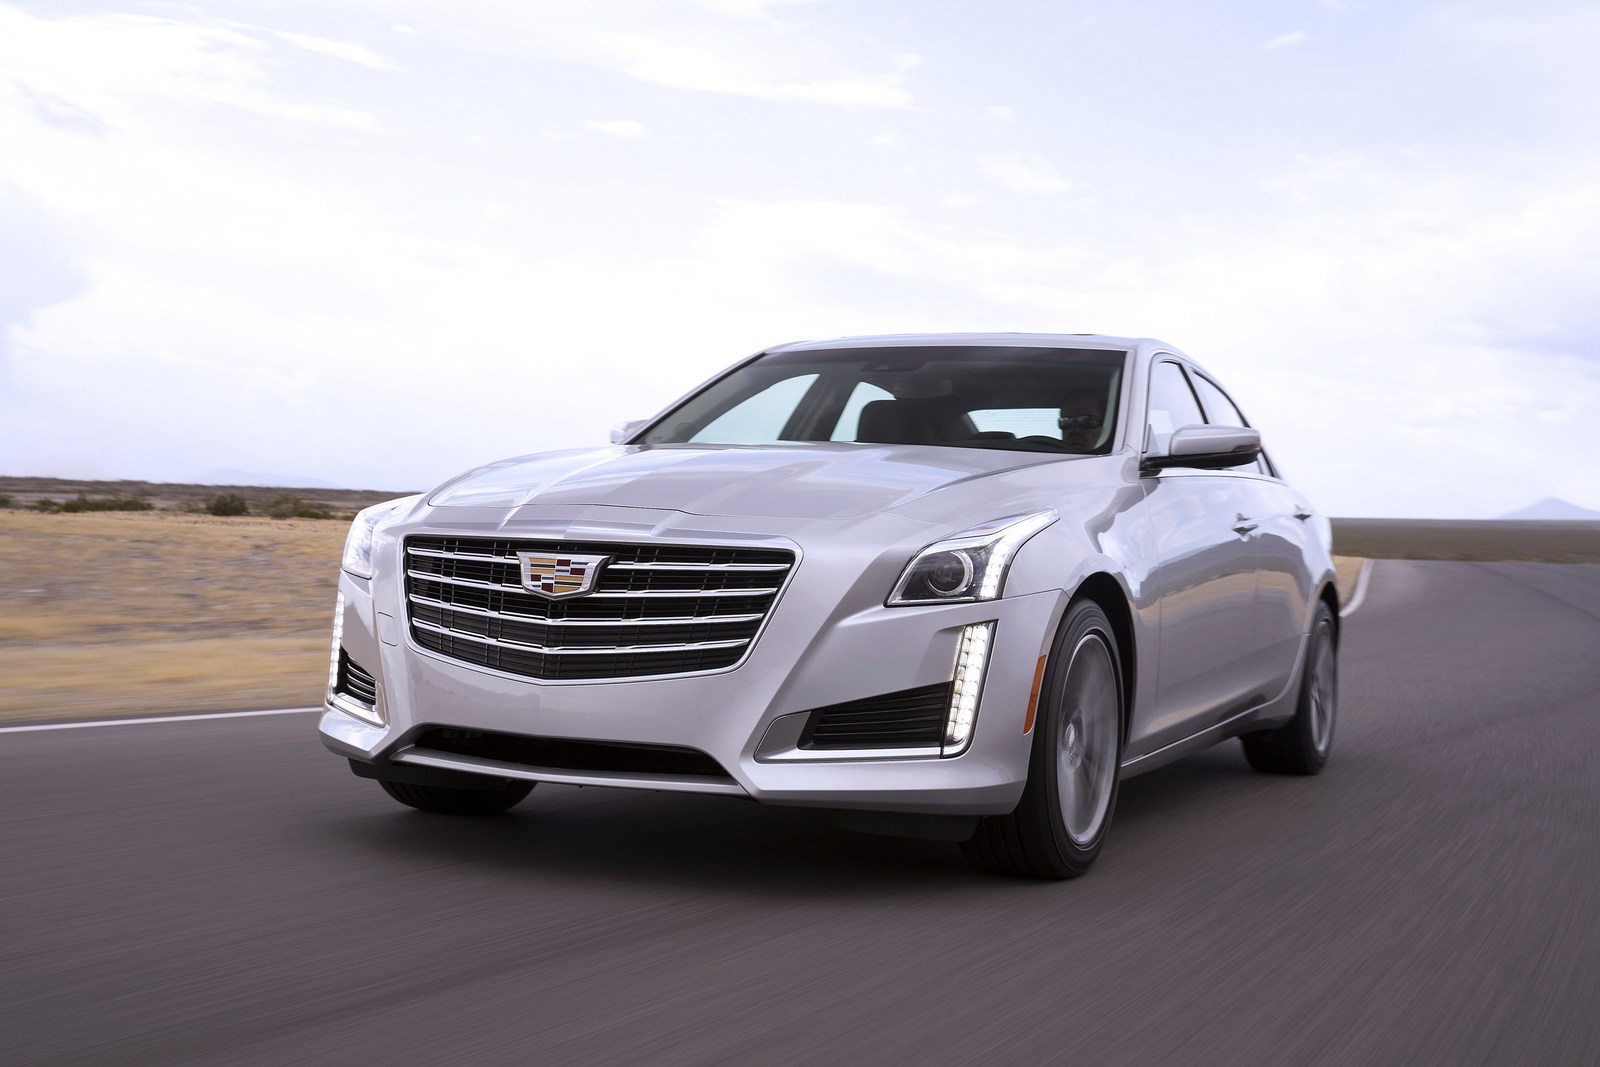 cadillac president confirms new ct5 will replace the ats cts and xts. Black Bedroom Furniture Sets. Home Design Ideas